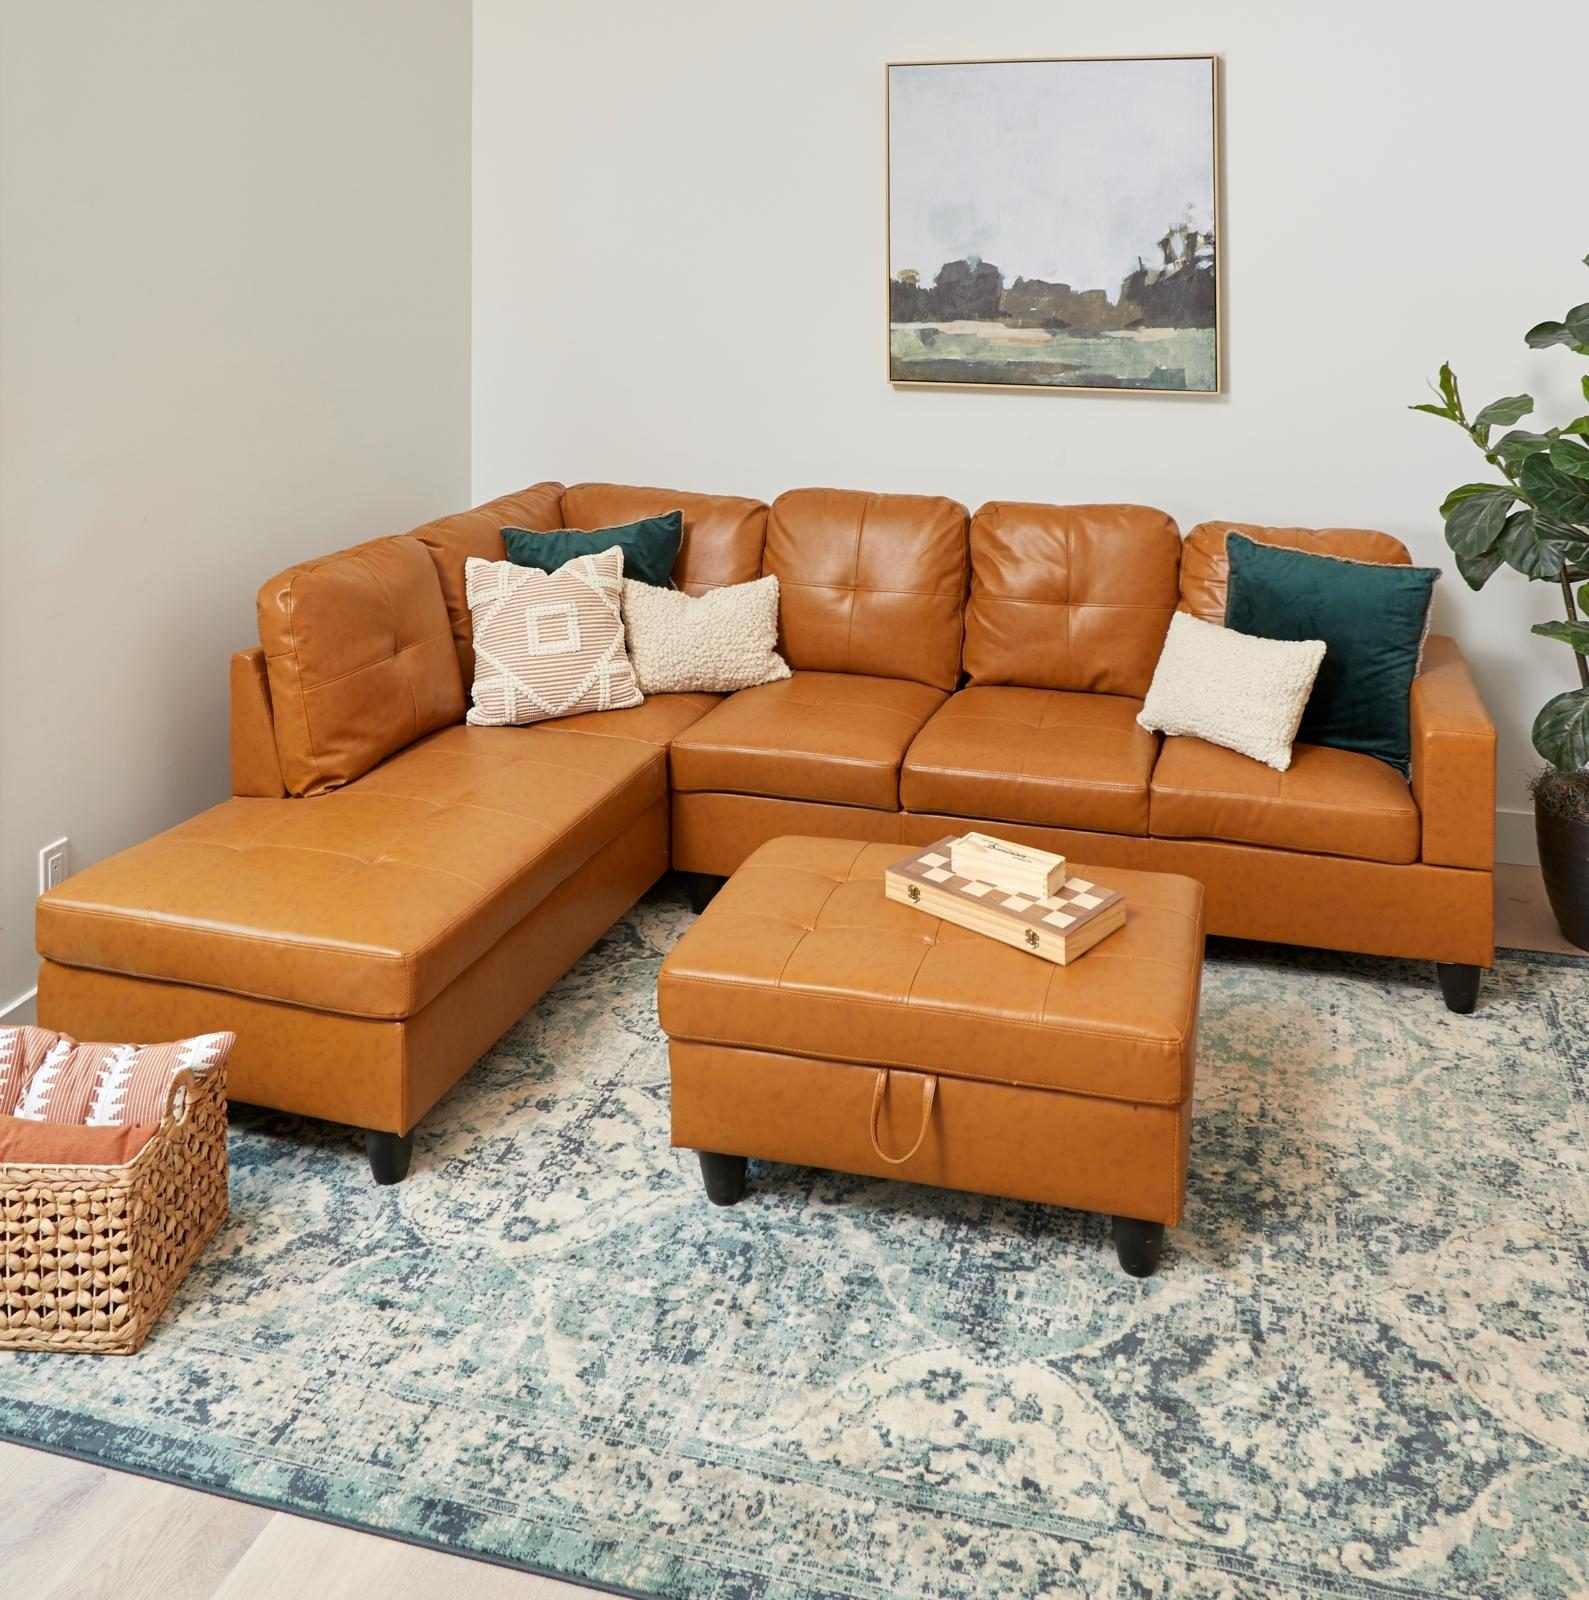 The Best Couches and Sectionals for Small Spaces